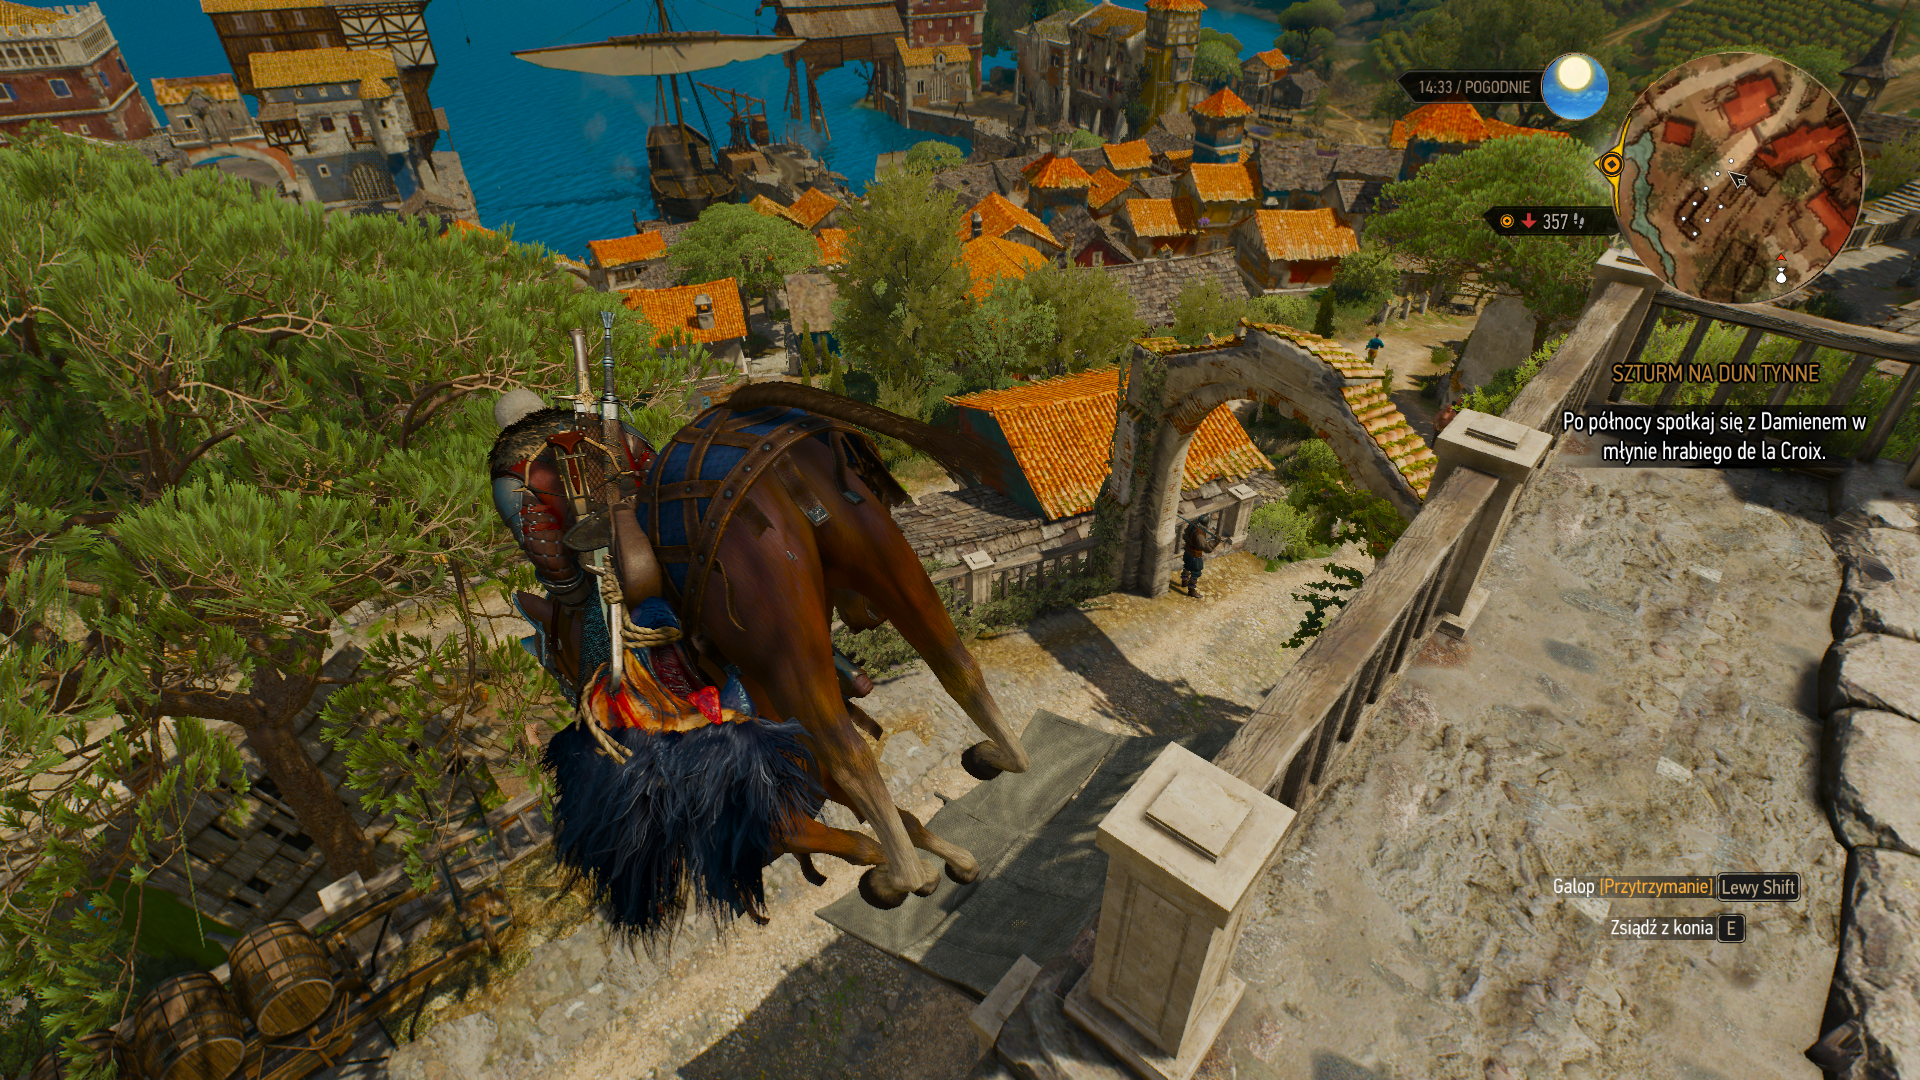 The Witcher 3 29.12.2018 18_46_42.png - Witcher 3: Wild Hunt, the